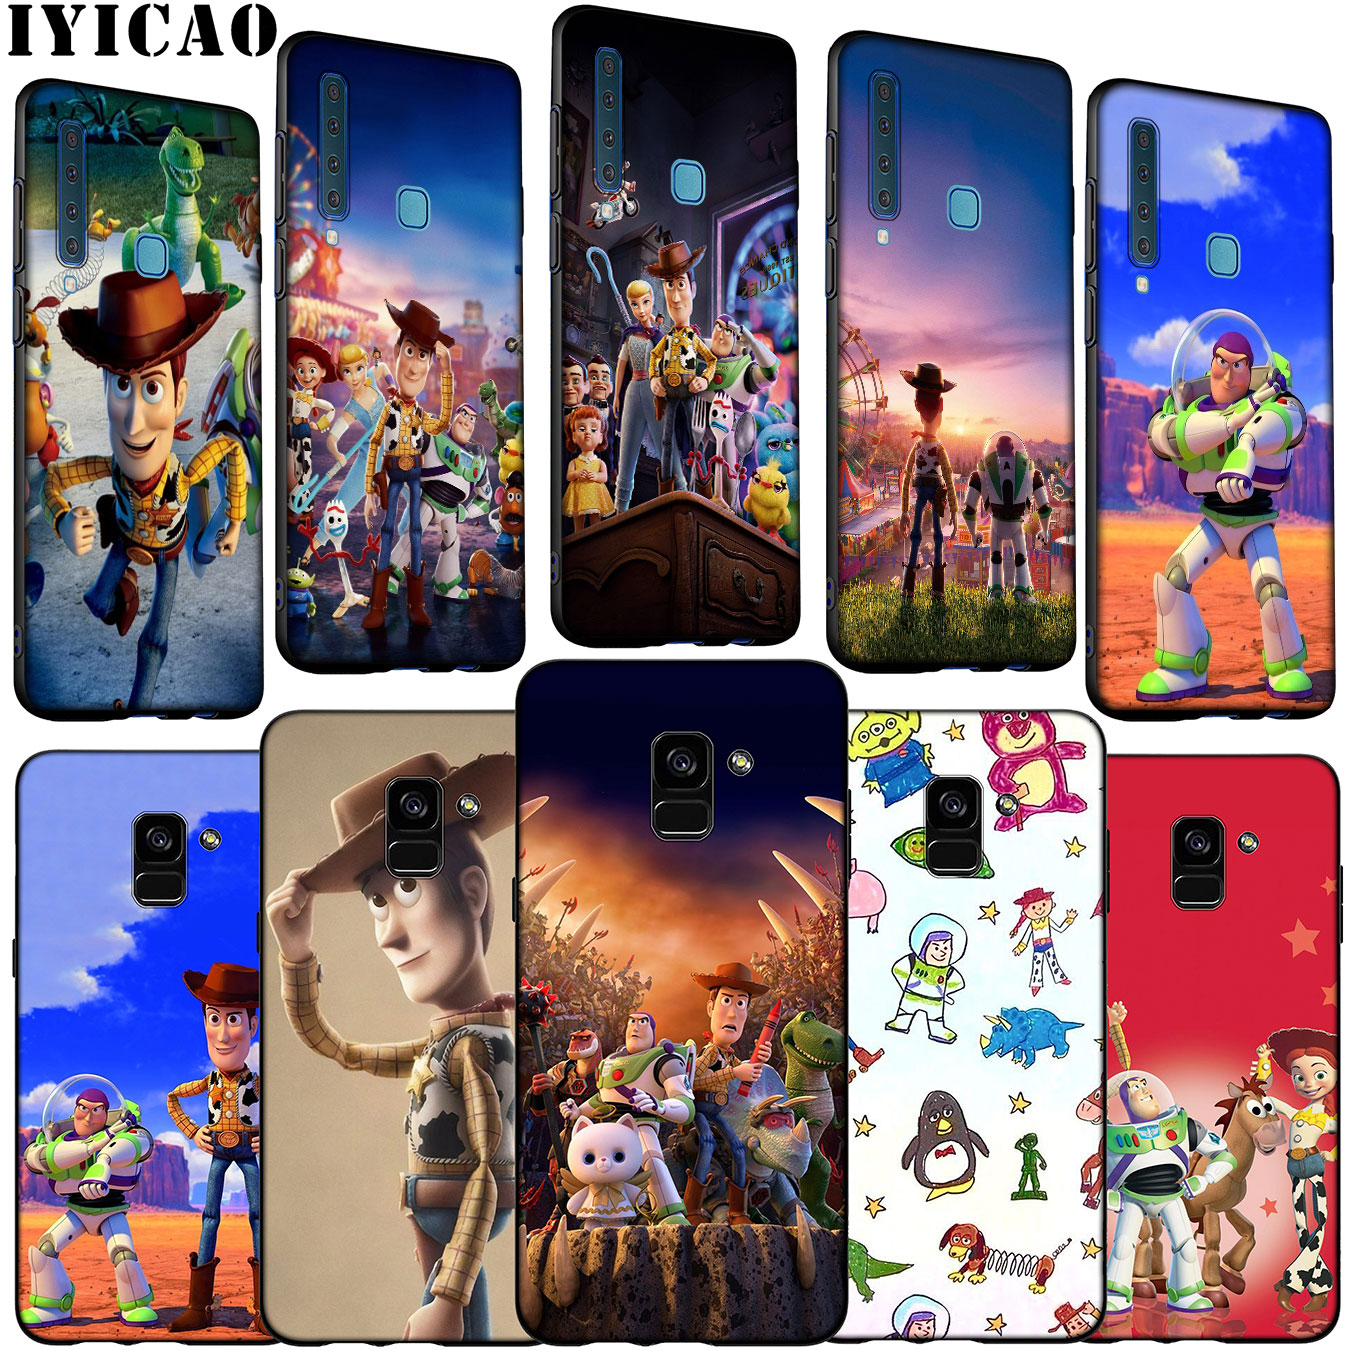 Toy Story 4 Soft Silicone Phone Case for Samsung <font><b>Galaxy</b></font> A6 A7 A8 A9 <font><b>2018</b></font> A3 A5 2016 2017 Note 9 <font><b>8</b></font> 10 Plus image